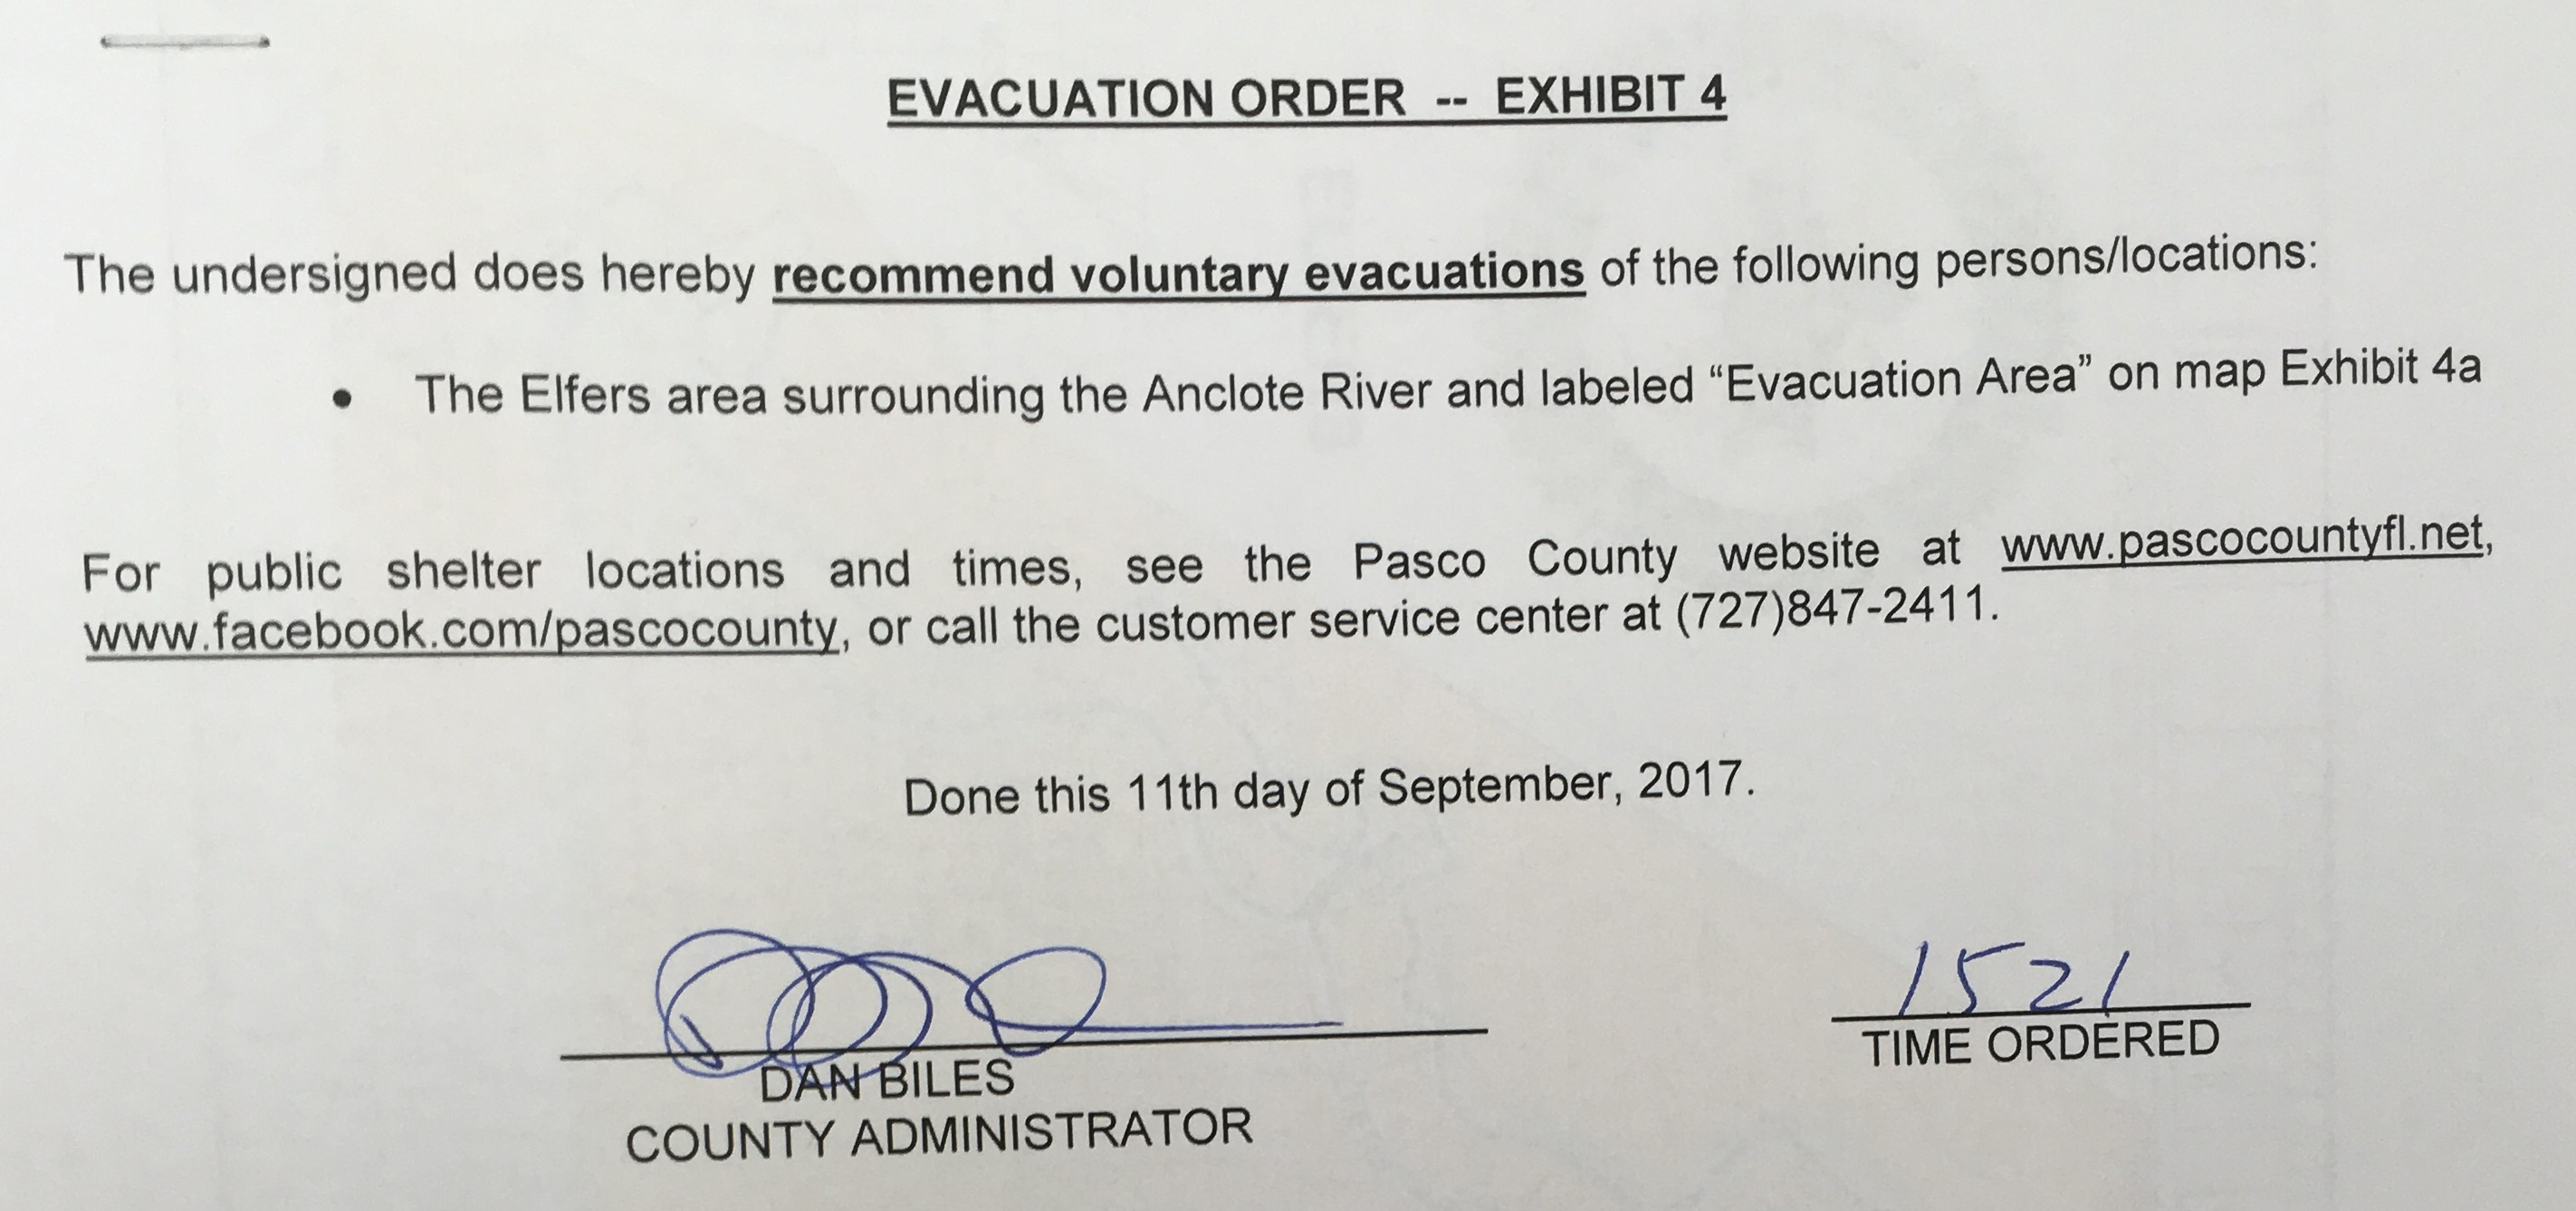 Announcements pasco county issues evacuation for anclote river area fandeluxe Gallery